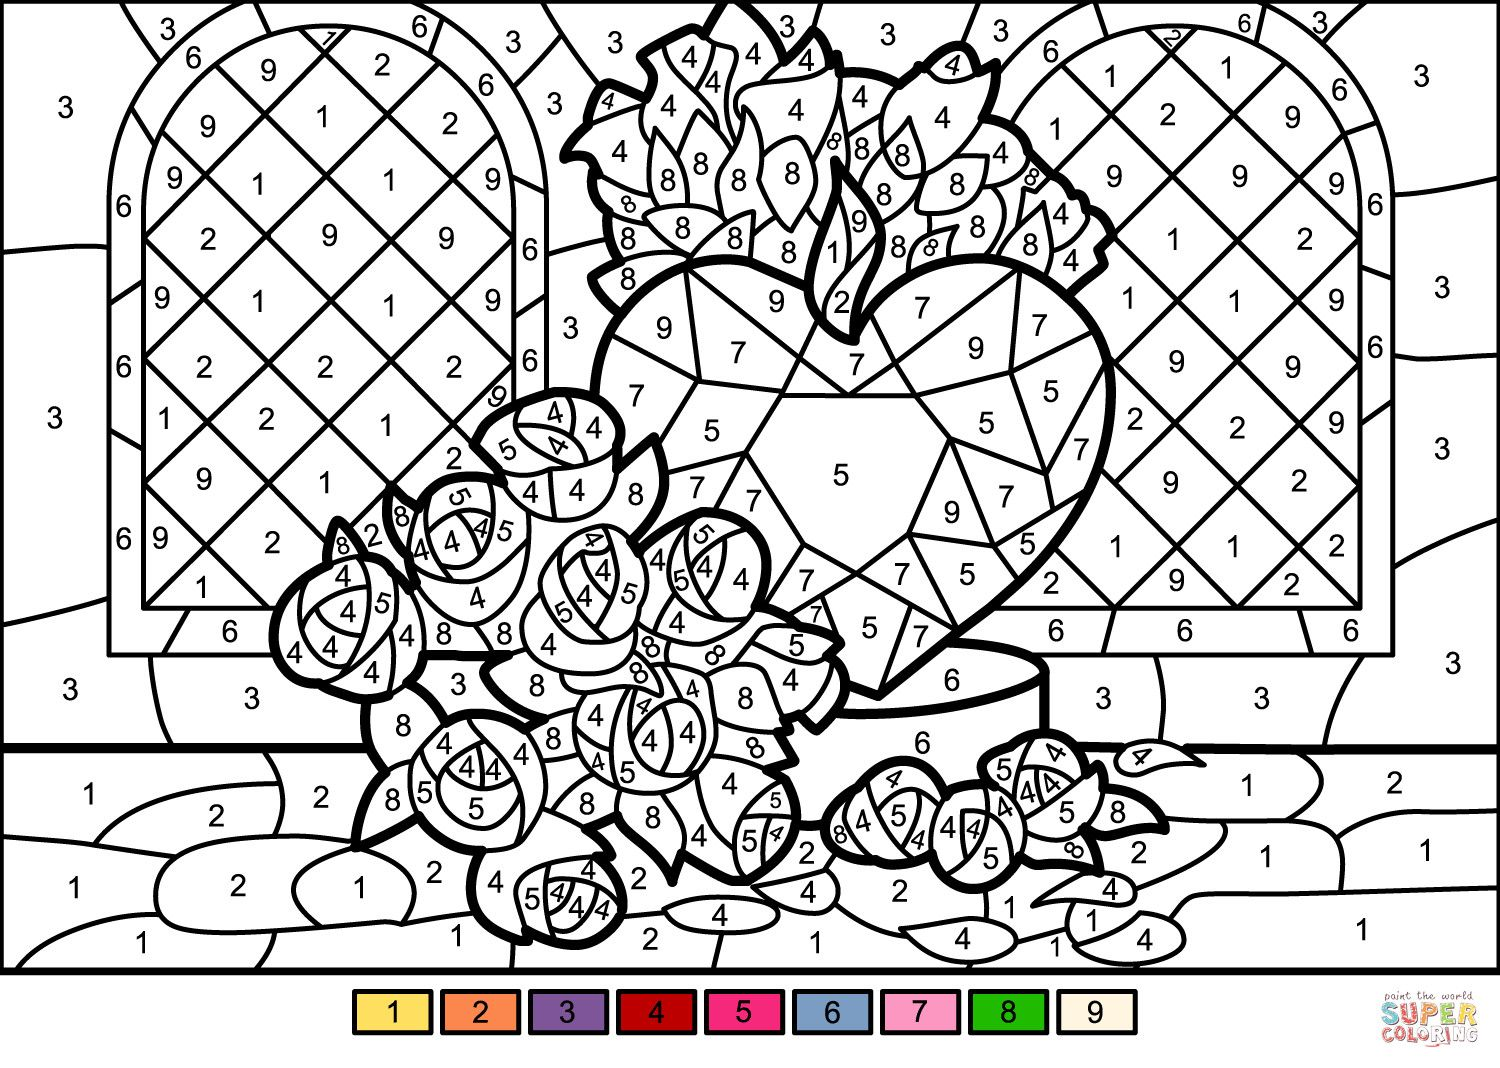 4 Color By Number Worksheet Online In 2020 Unicorn Coloring Pages Color By Number Printable Heart Coloring Pages